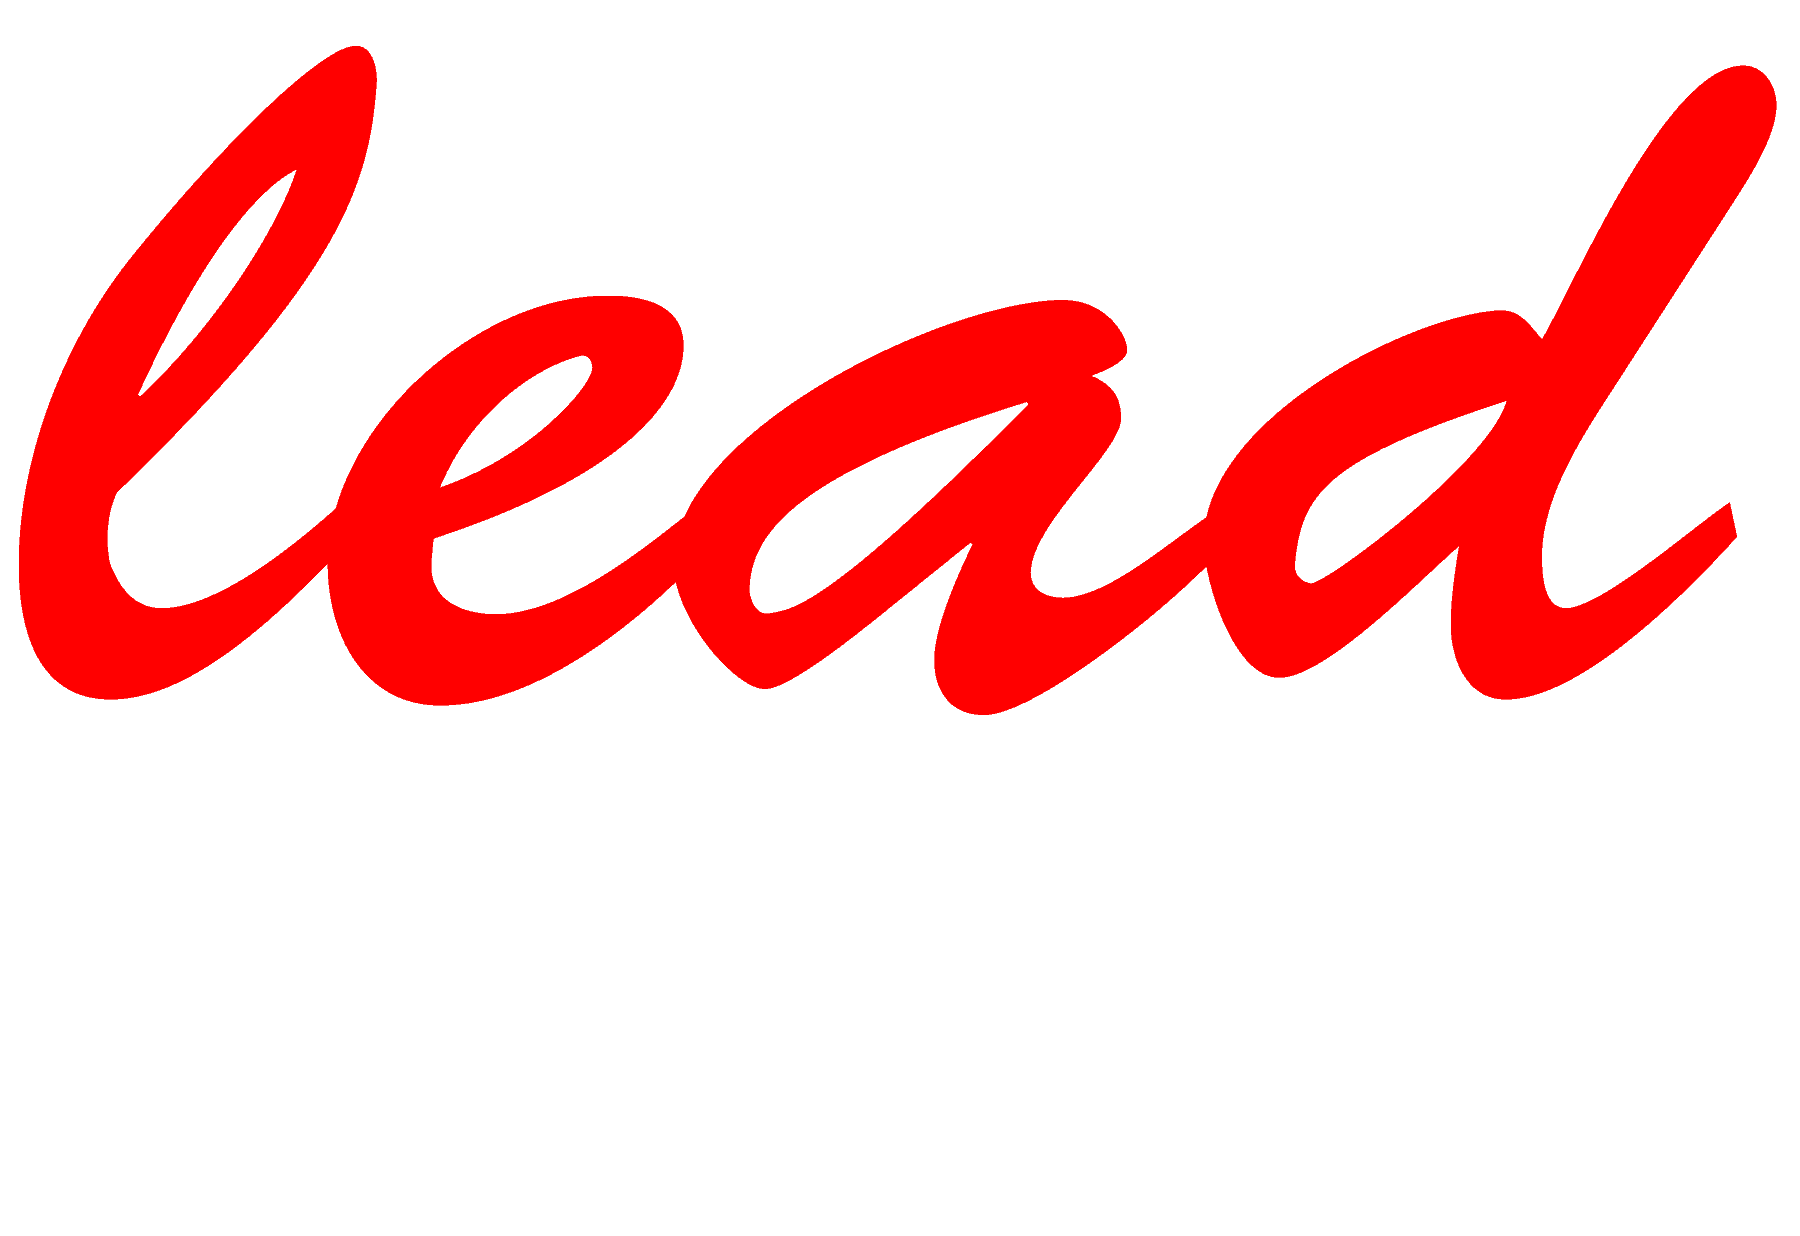 Lead Guitar Logo